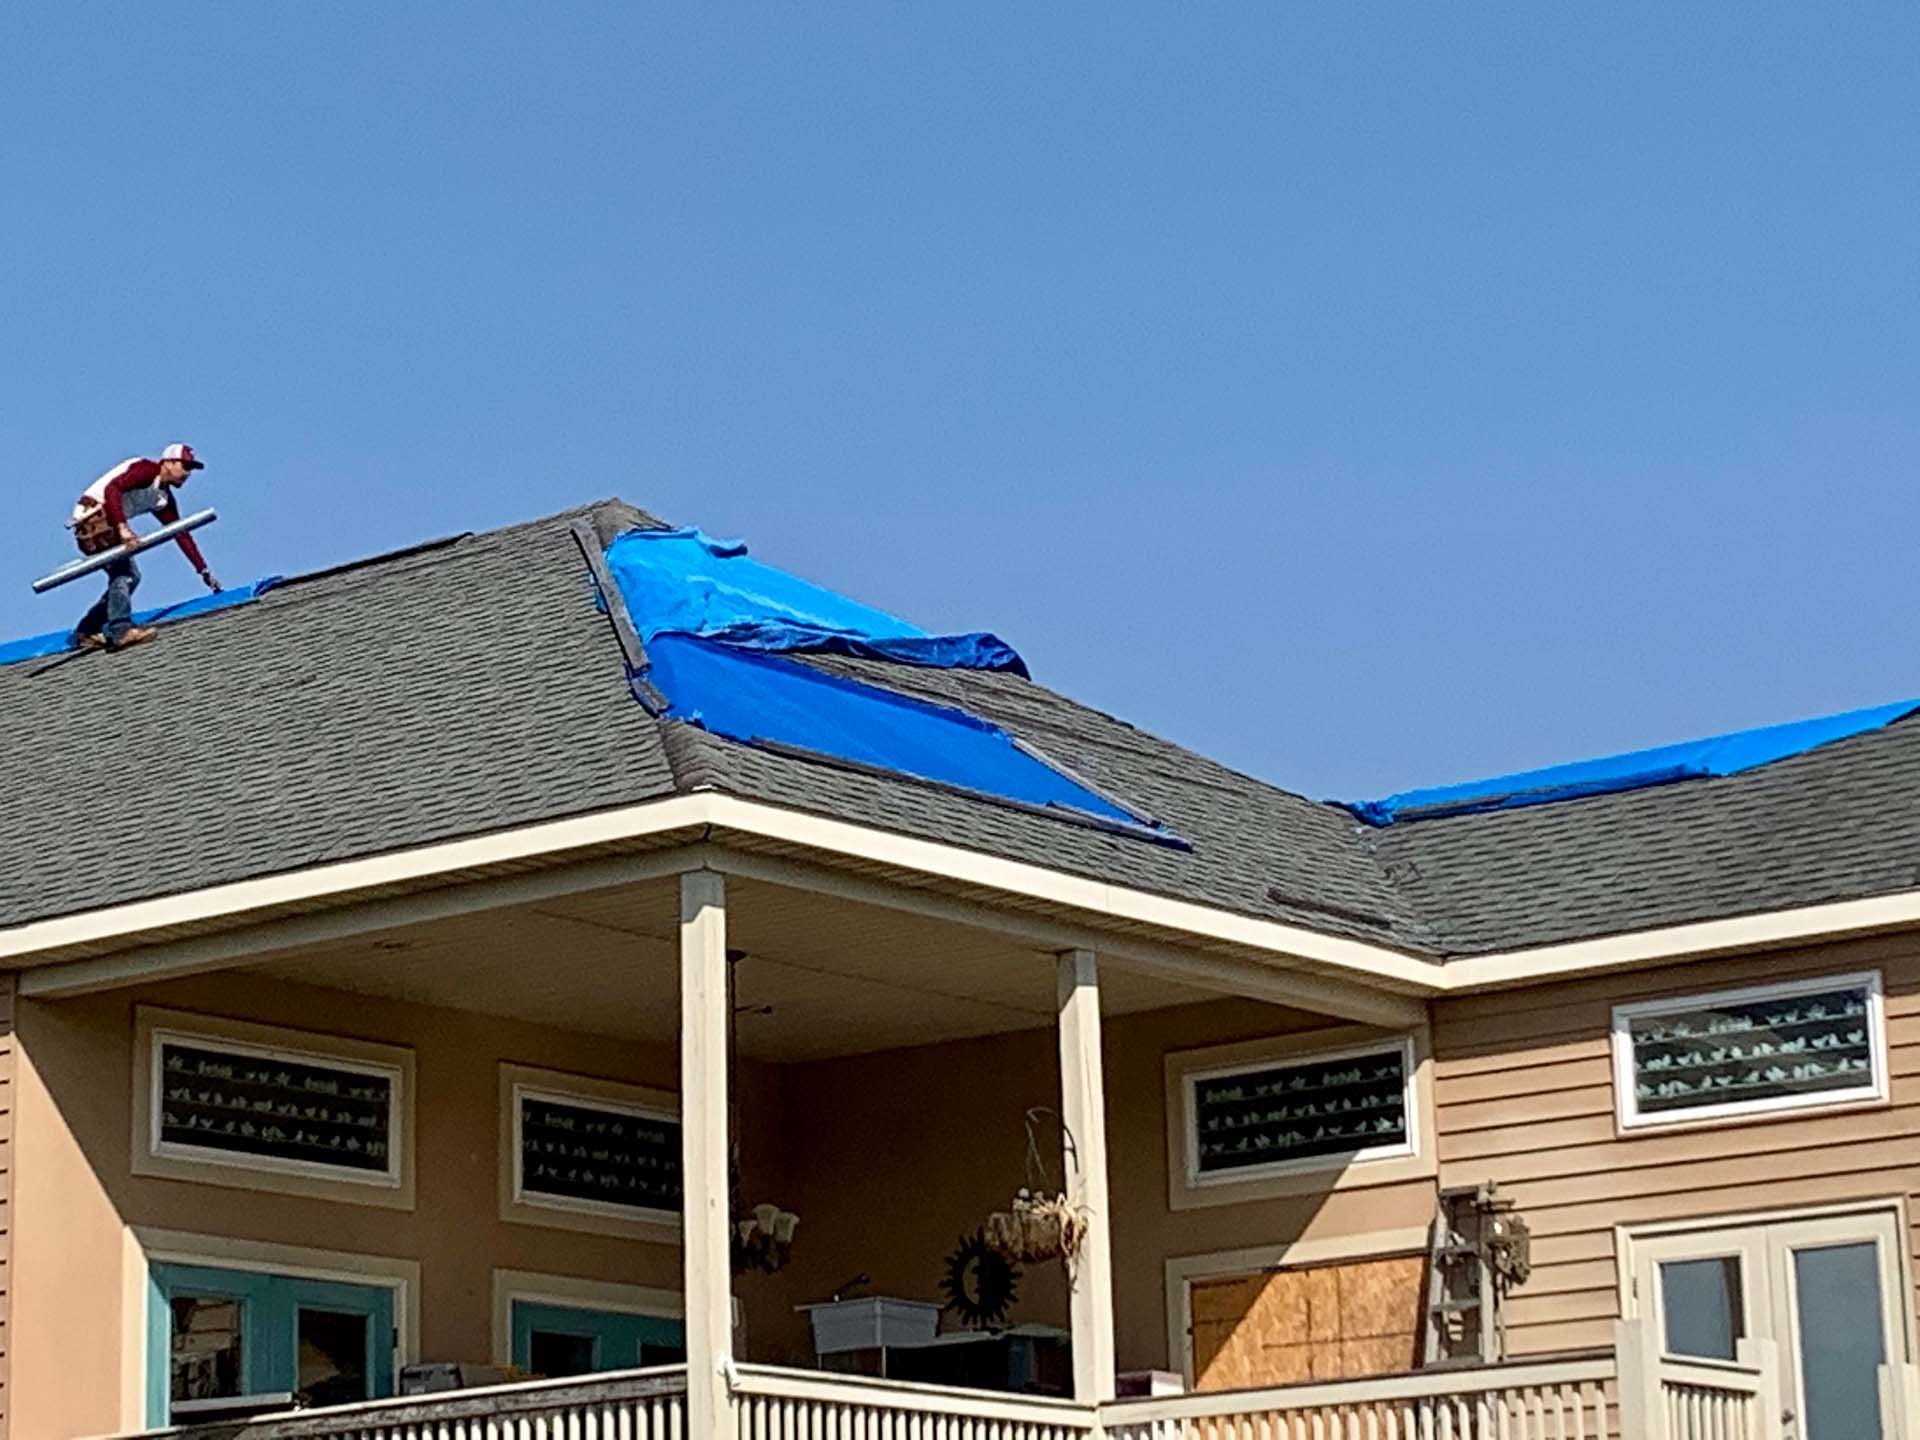 What should I expect from a roofing company?